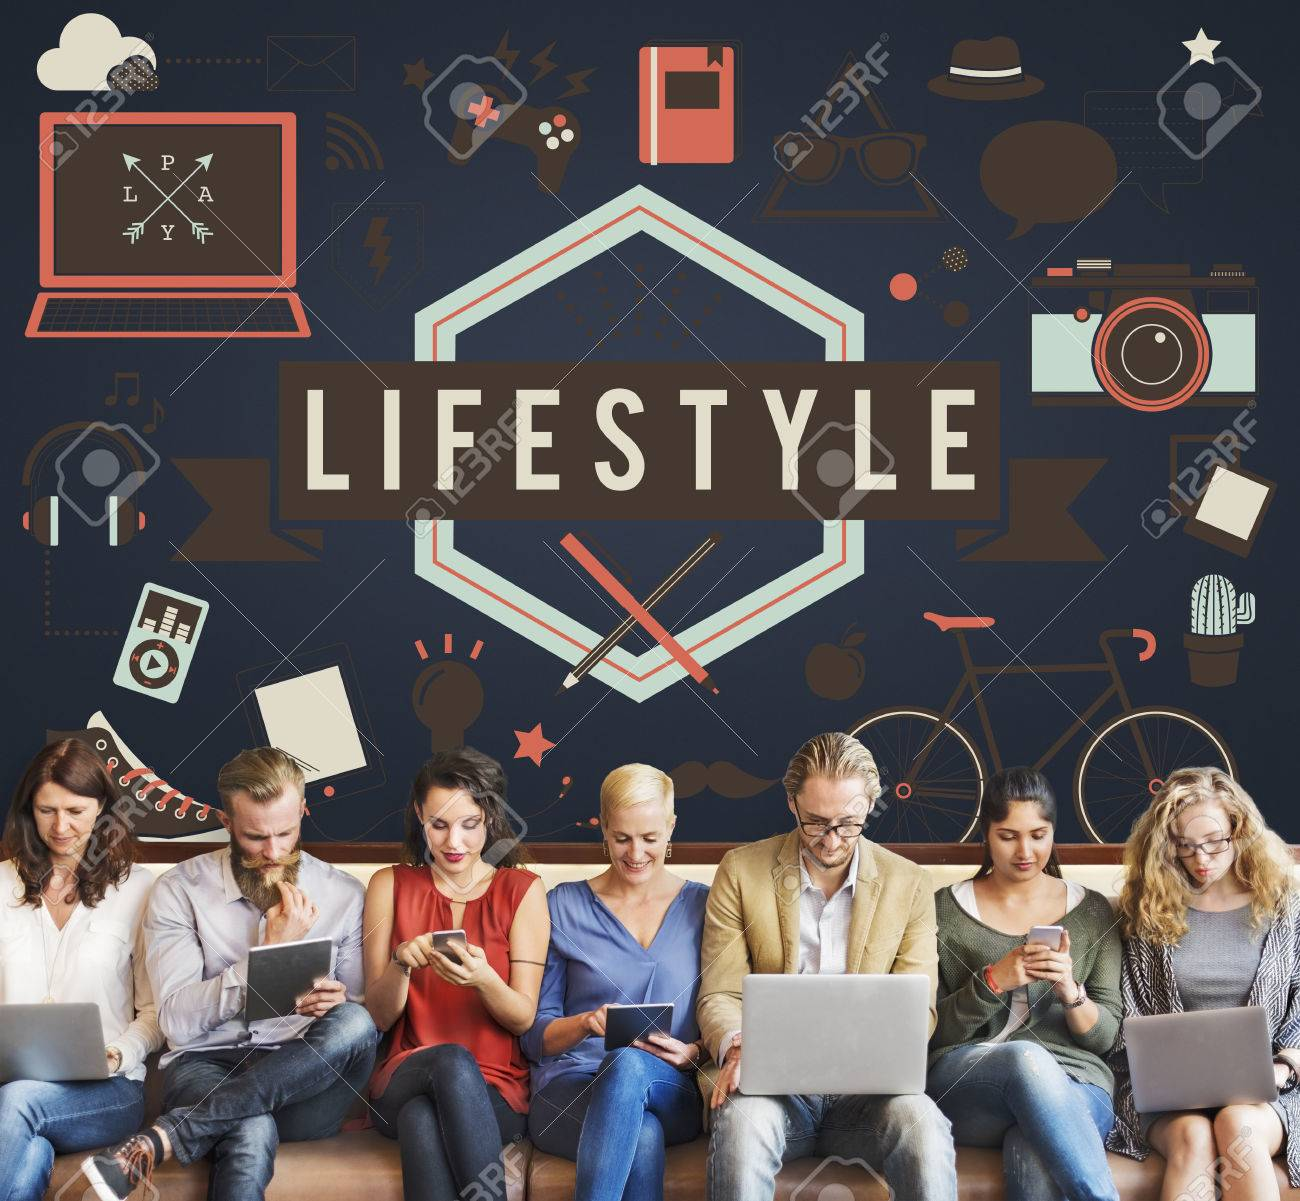 Lifestyle Leisure Lifestyle Hipster Concept Banque d'images - 58882883